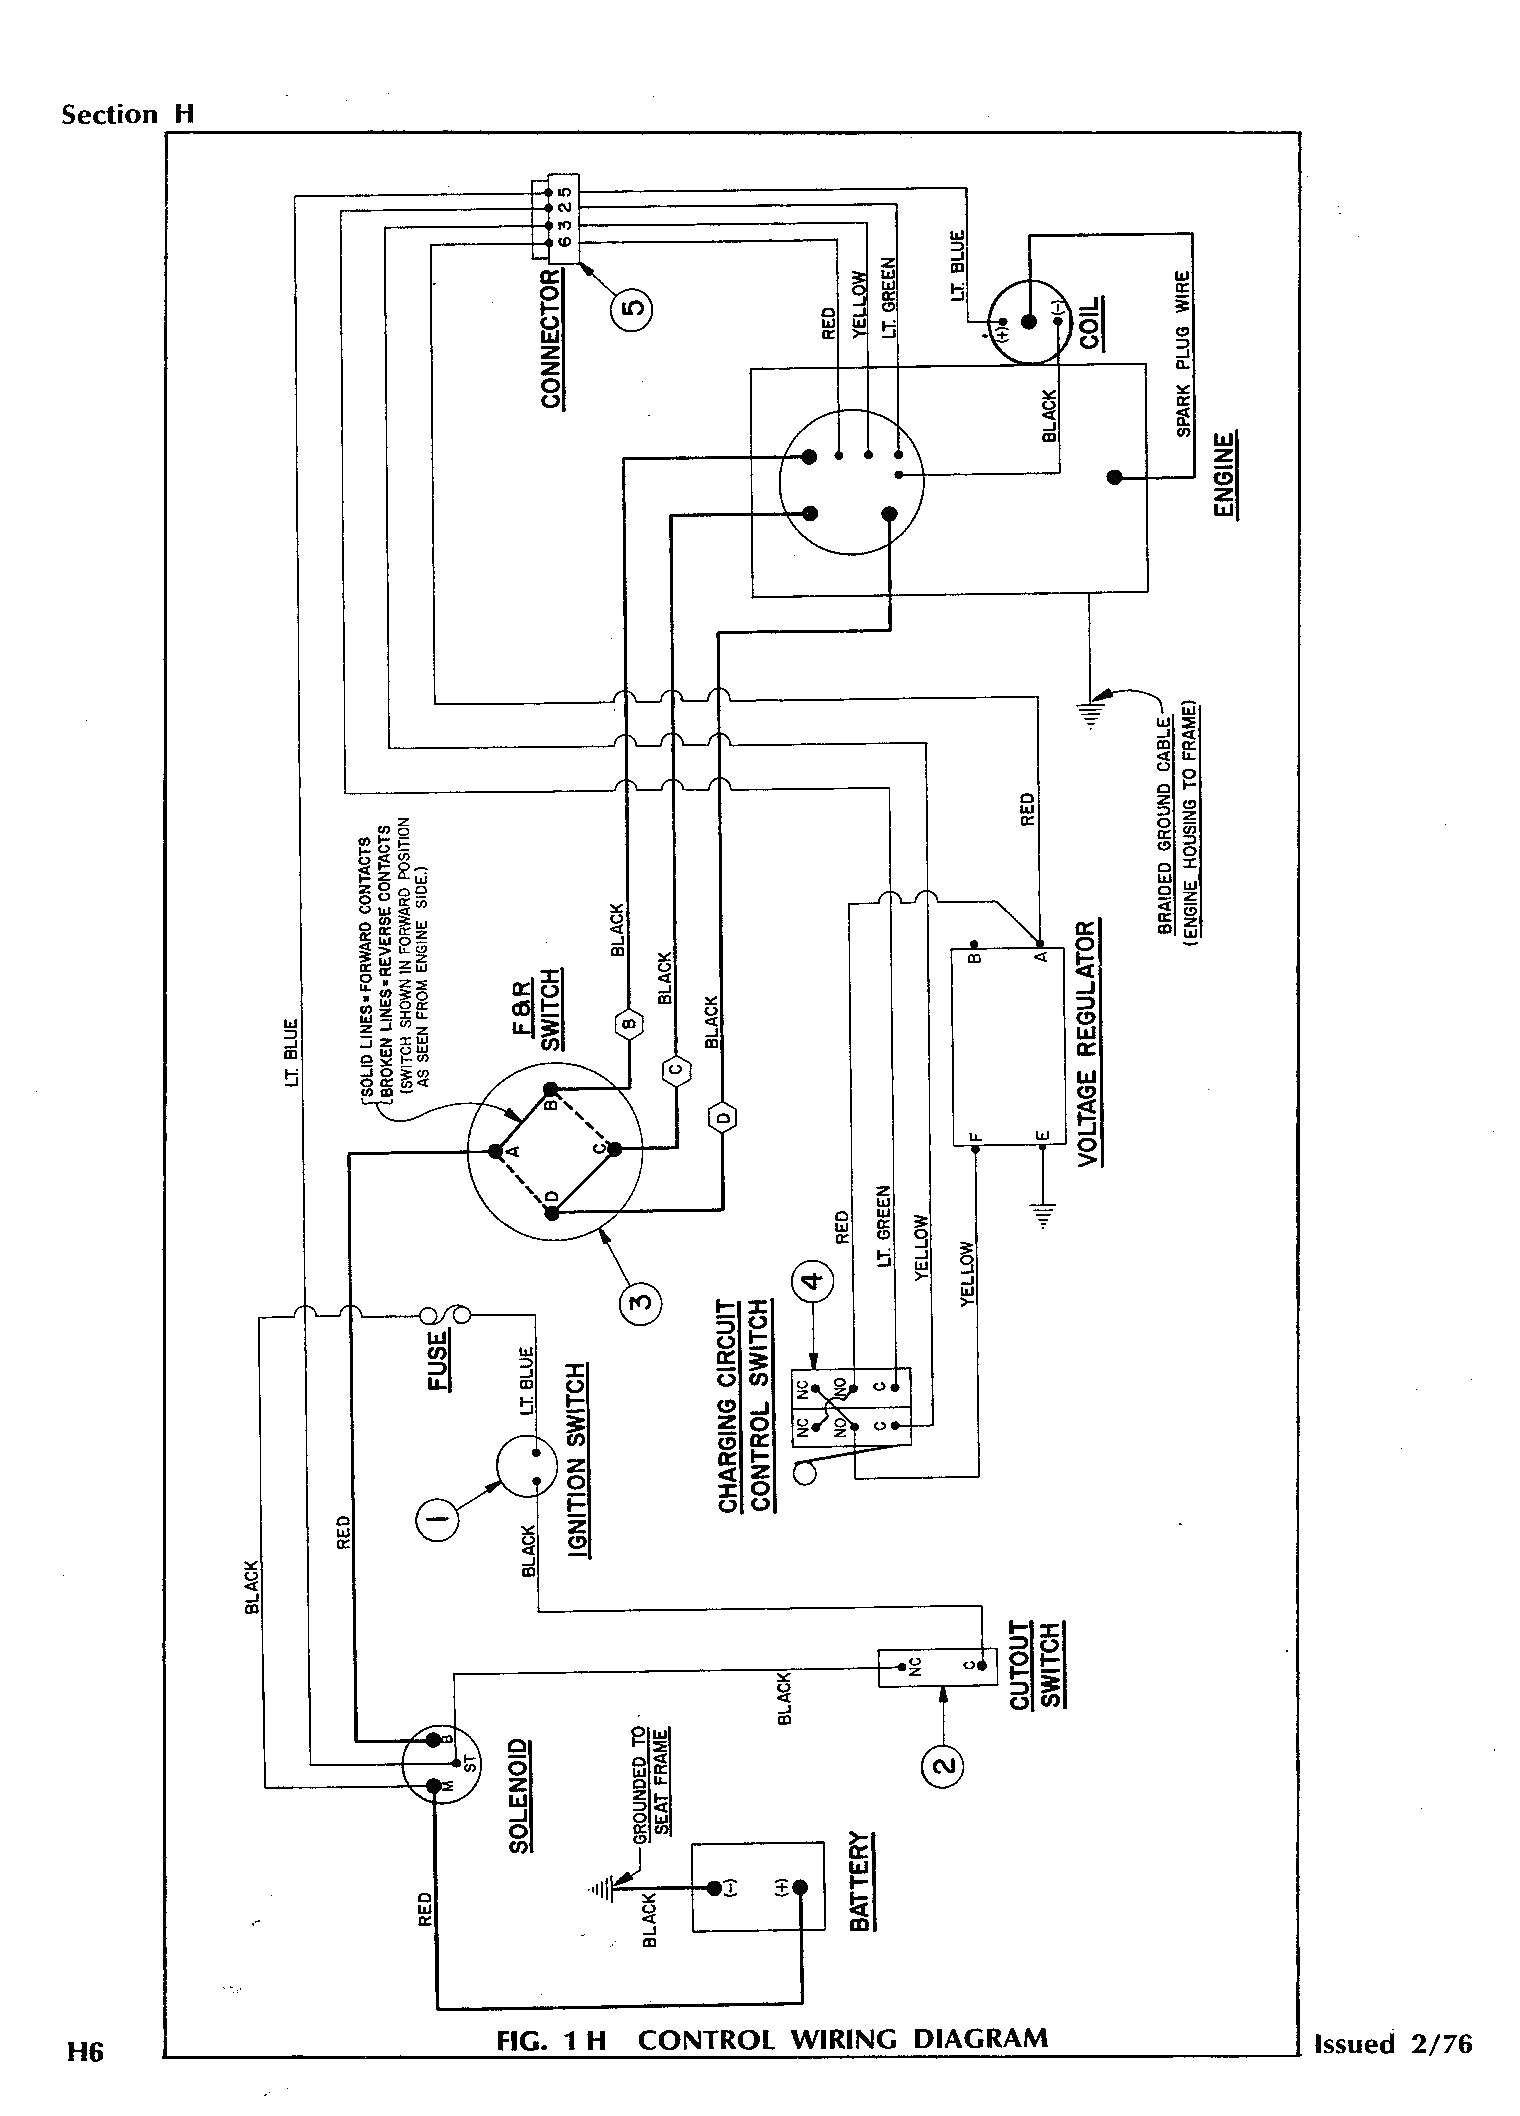 1994 Ezgo Gas Engine Wiring Diagram 1992 Ezgo Wiring Diagram Wiring Diagram Data Of 1994 Ezgo Gas Engine Wiring Diagram 1995 Club Car Wiring Diagram